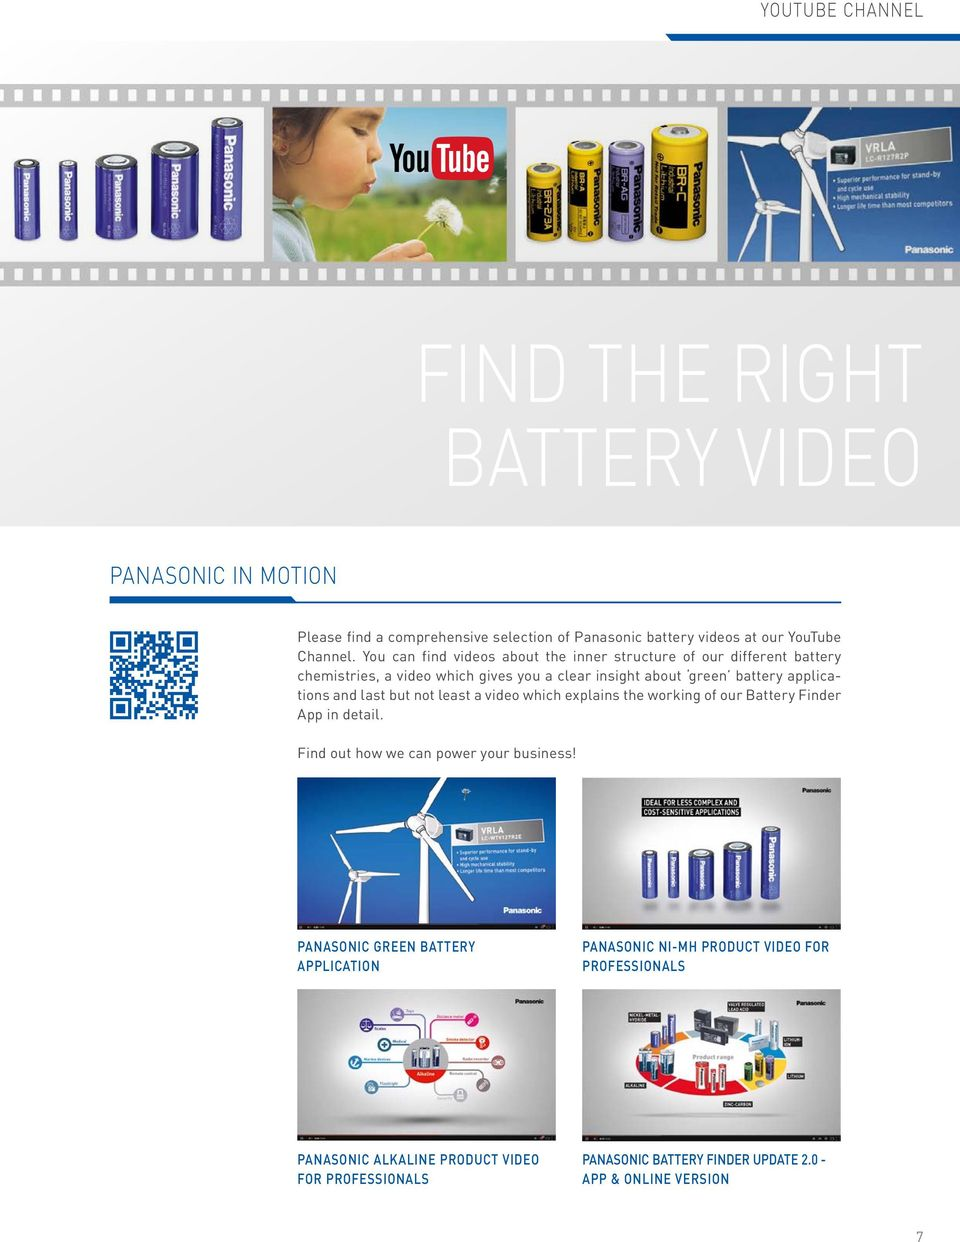 and last but not least a video which explains the working of our Battery Finder App in detail. Find out how we can power your business!